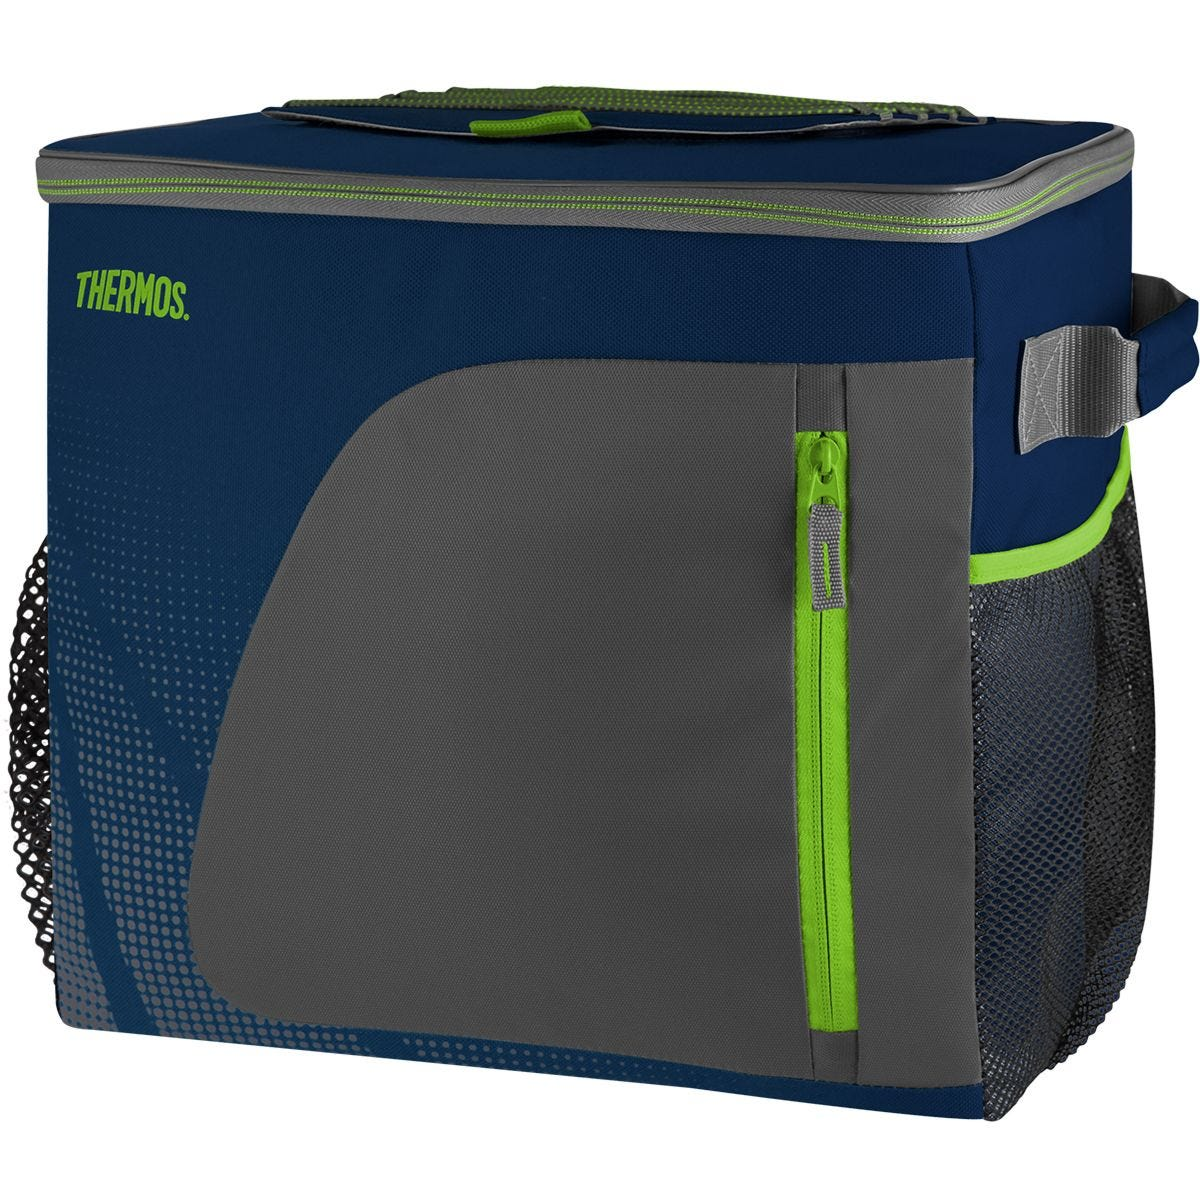 Thermos  Radiance Cooler 36 Can/30L - Navy